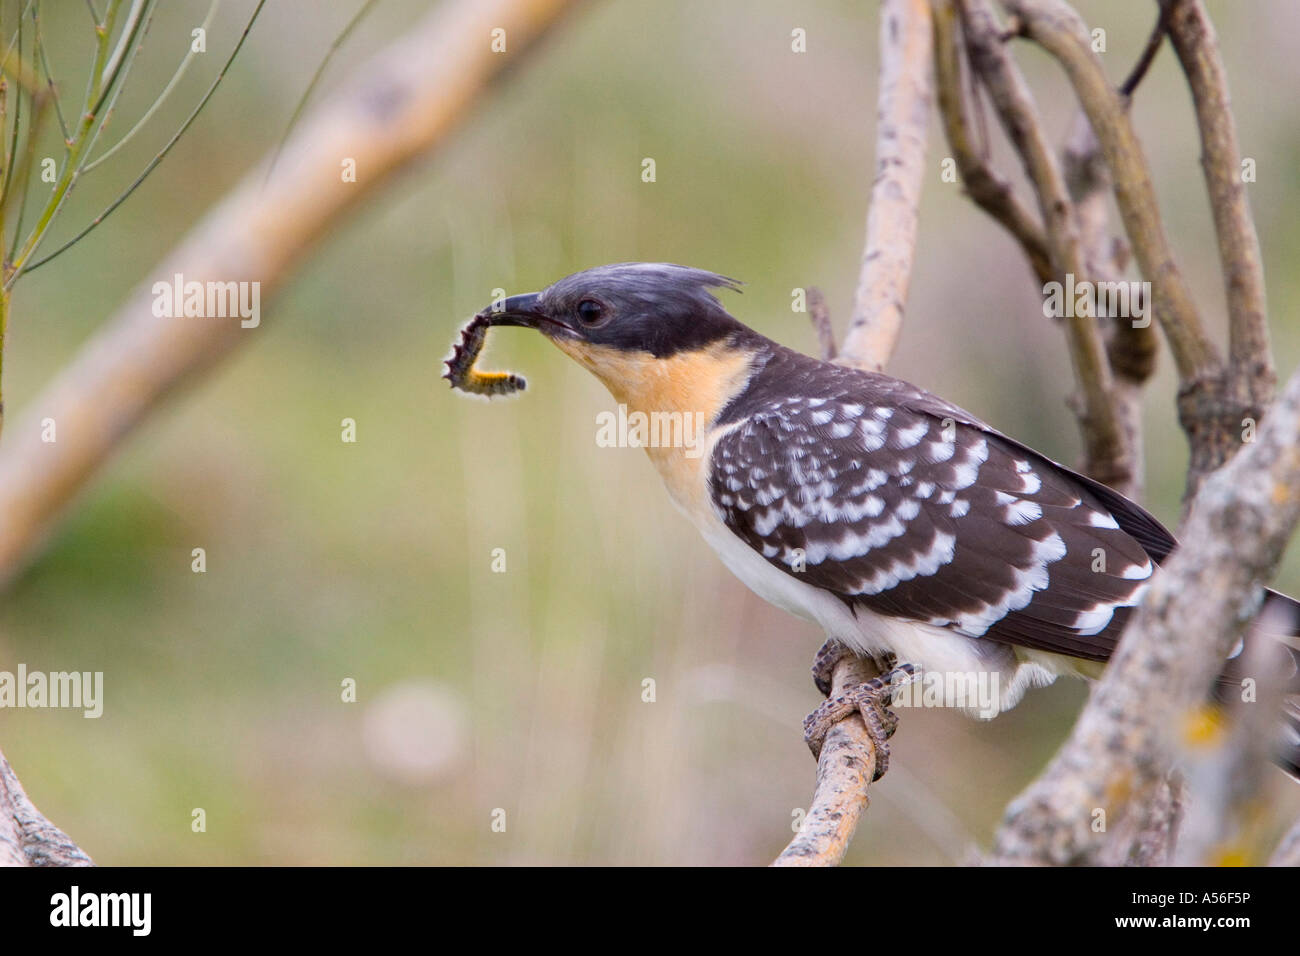 Great Spotted Cuckoo Clamator glandarius eating a Caterpillar - Stock Image